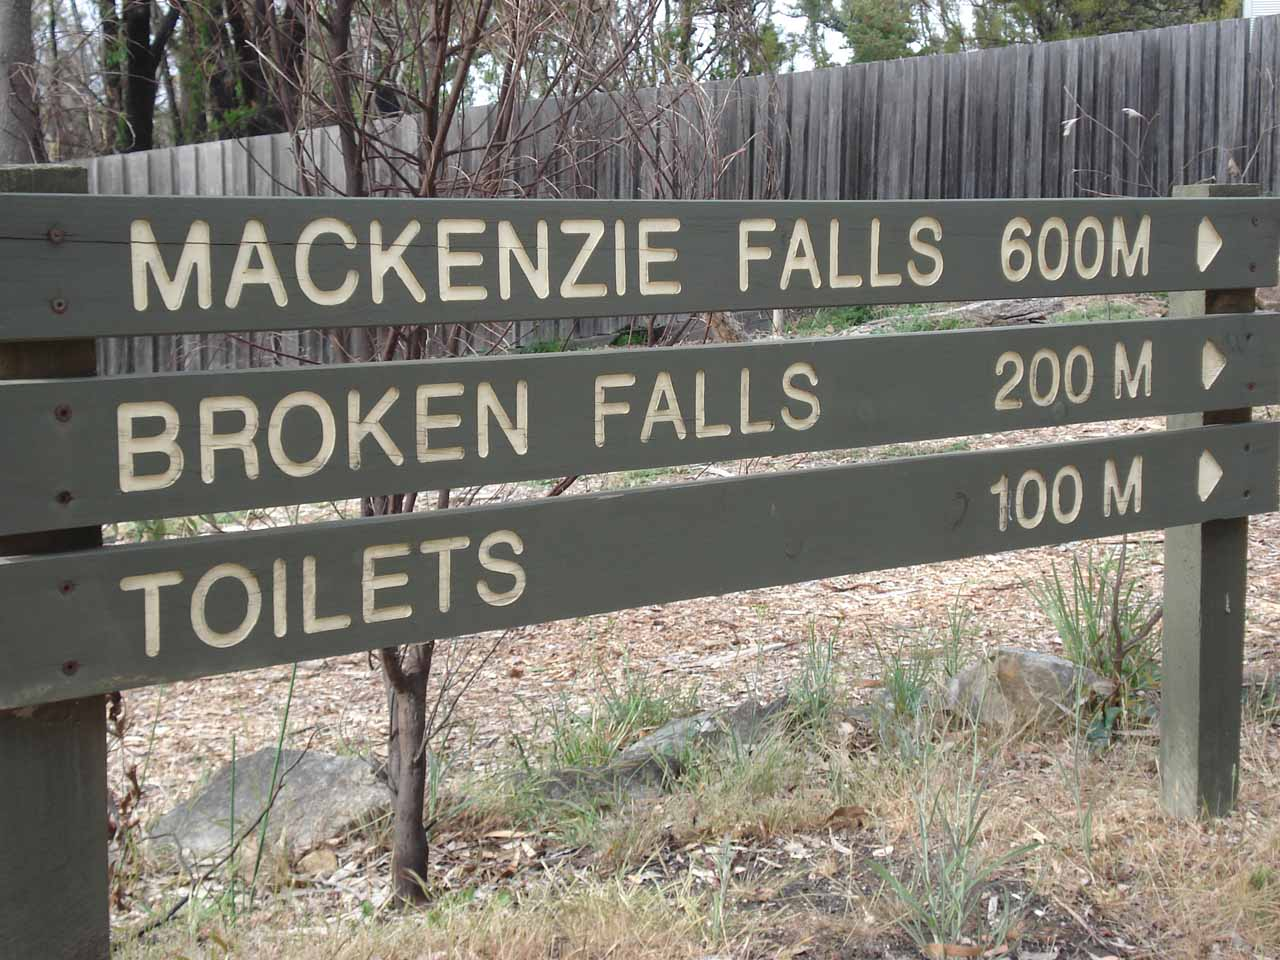 Sign at the start of the walk to the base of the MacKenzie Falls.  Note the Broken Falls track was closed during our visit